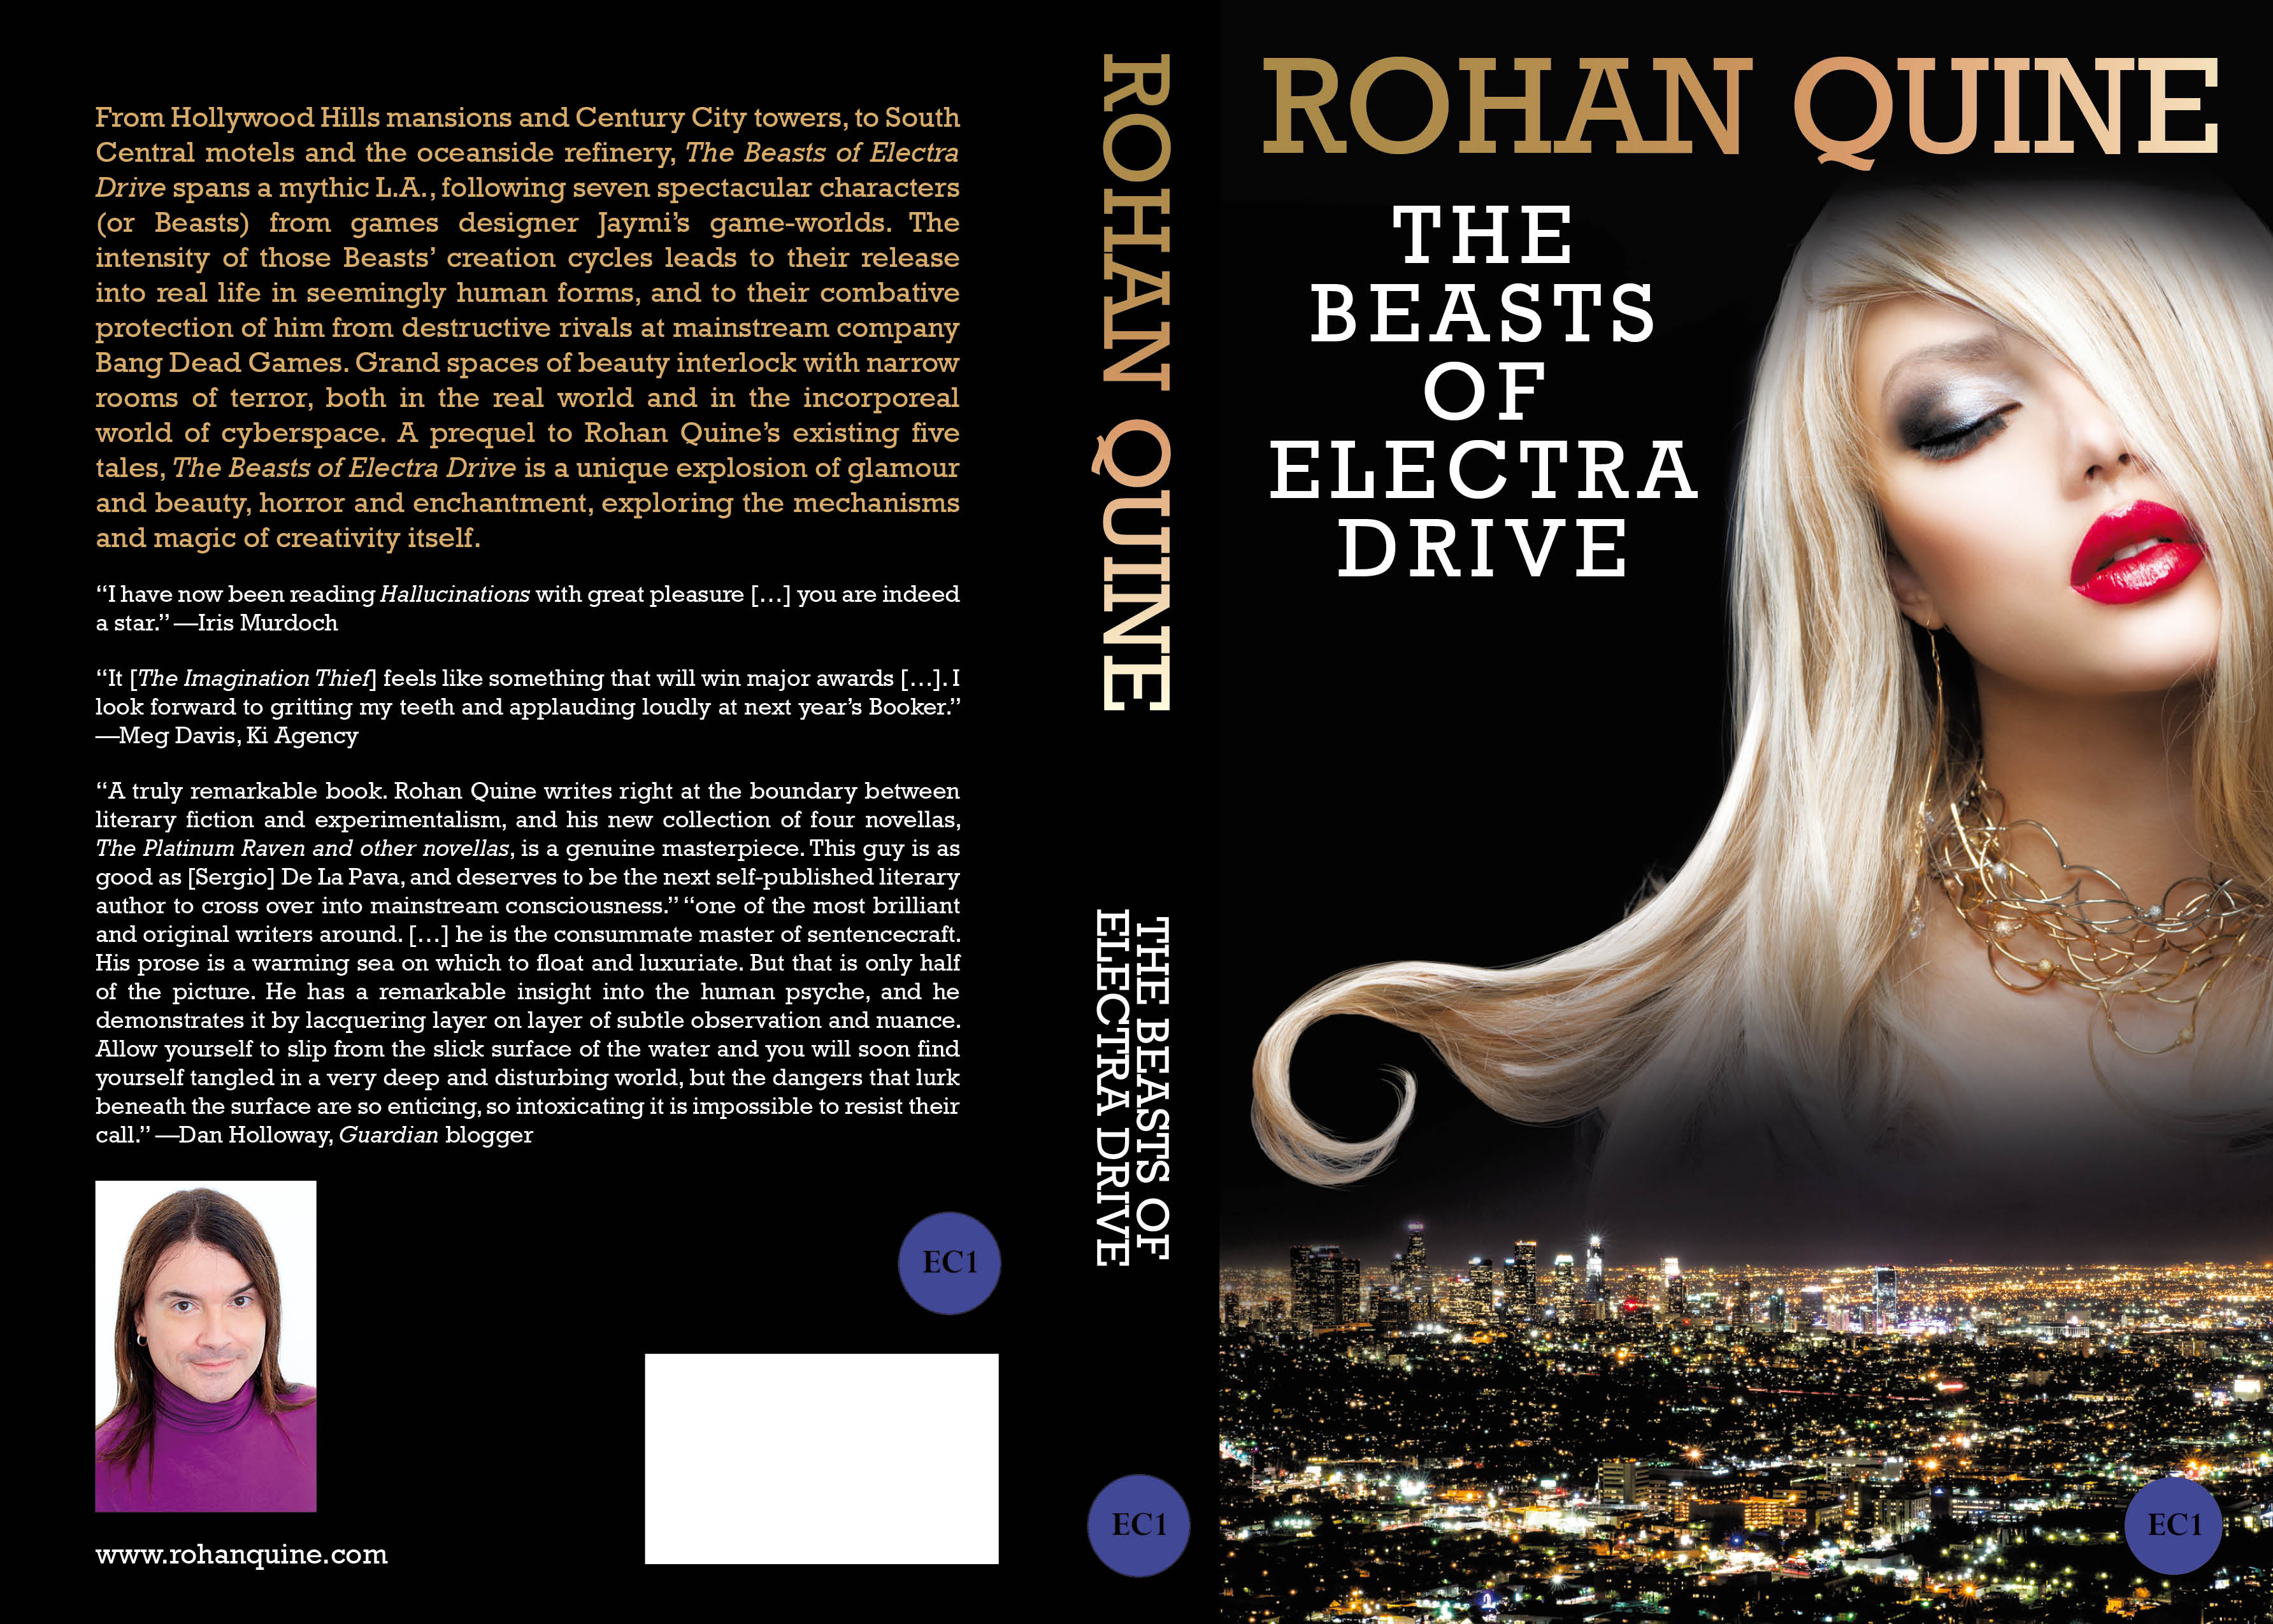 THE BEASTS OF ELECTRA DRIVE (novel) by Rohan Quine - paperback full cover - literary fiction with a touch of magical realism and a dusting of horror (literary fiction, magical realism, horror)